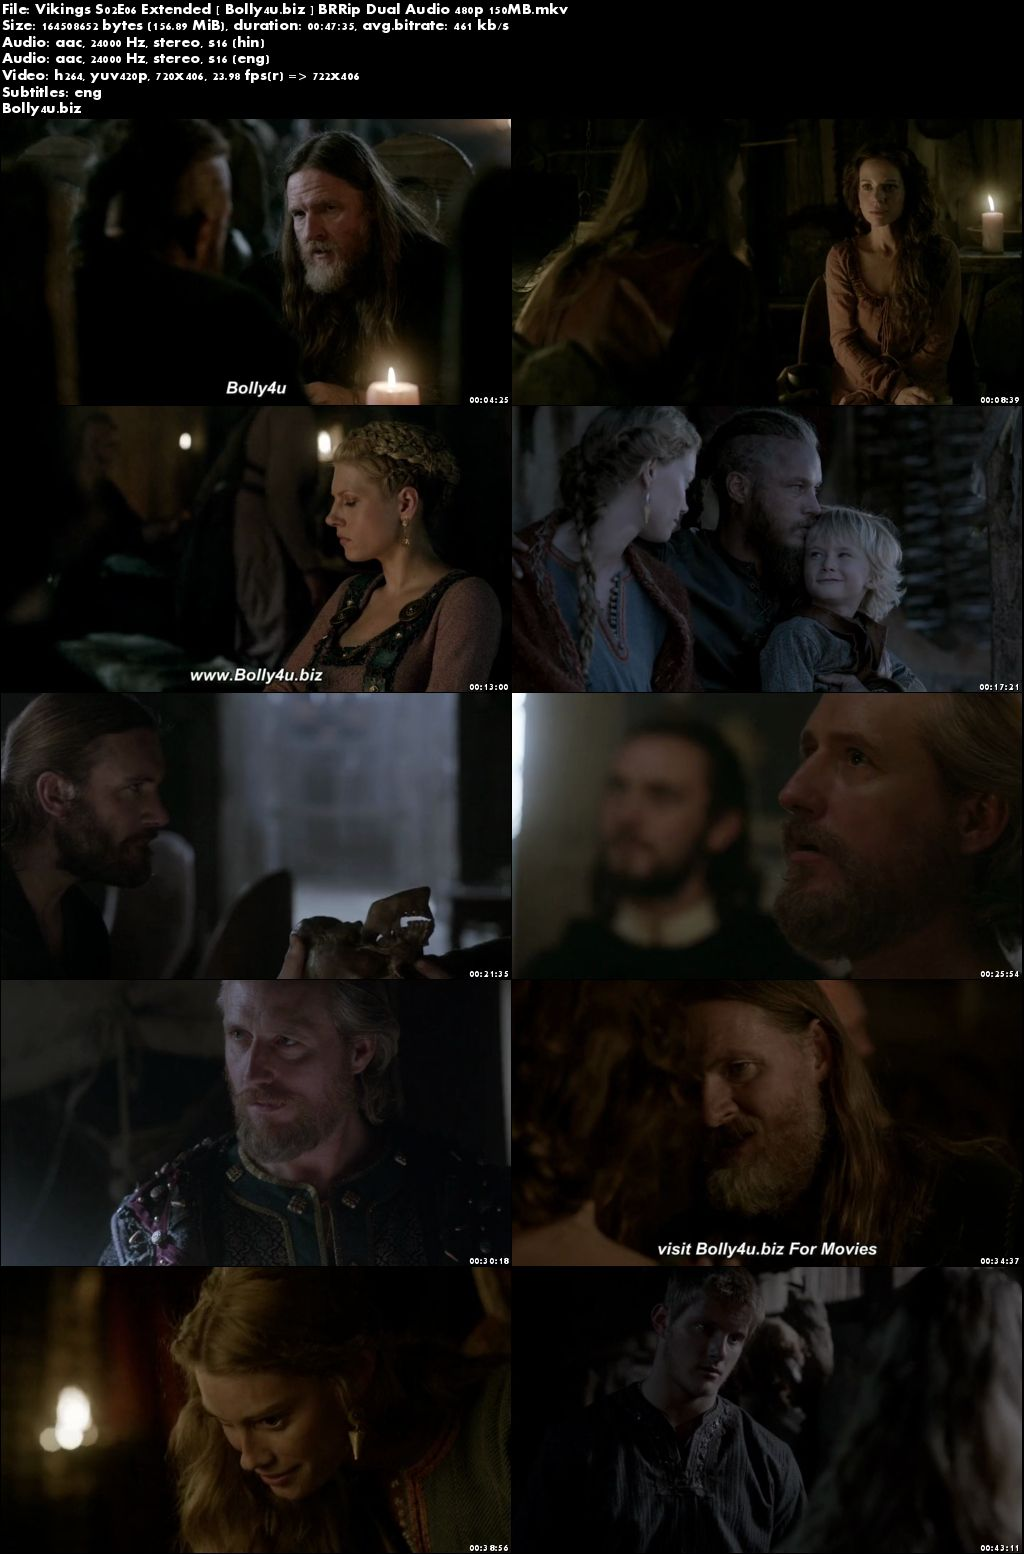 Vikings S02E06 Extended BRRip 150MB Hindi Dual Audio 480p Download